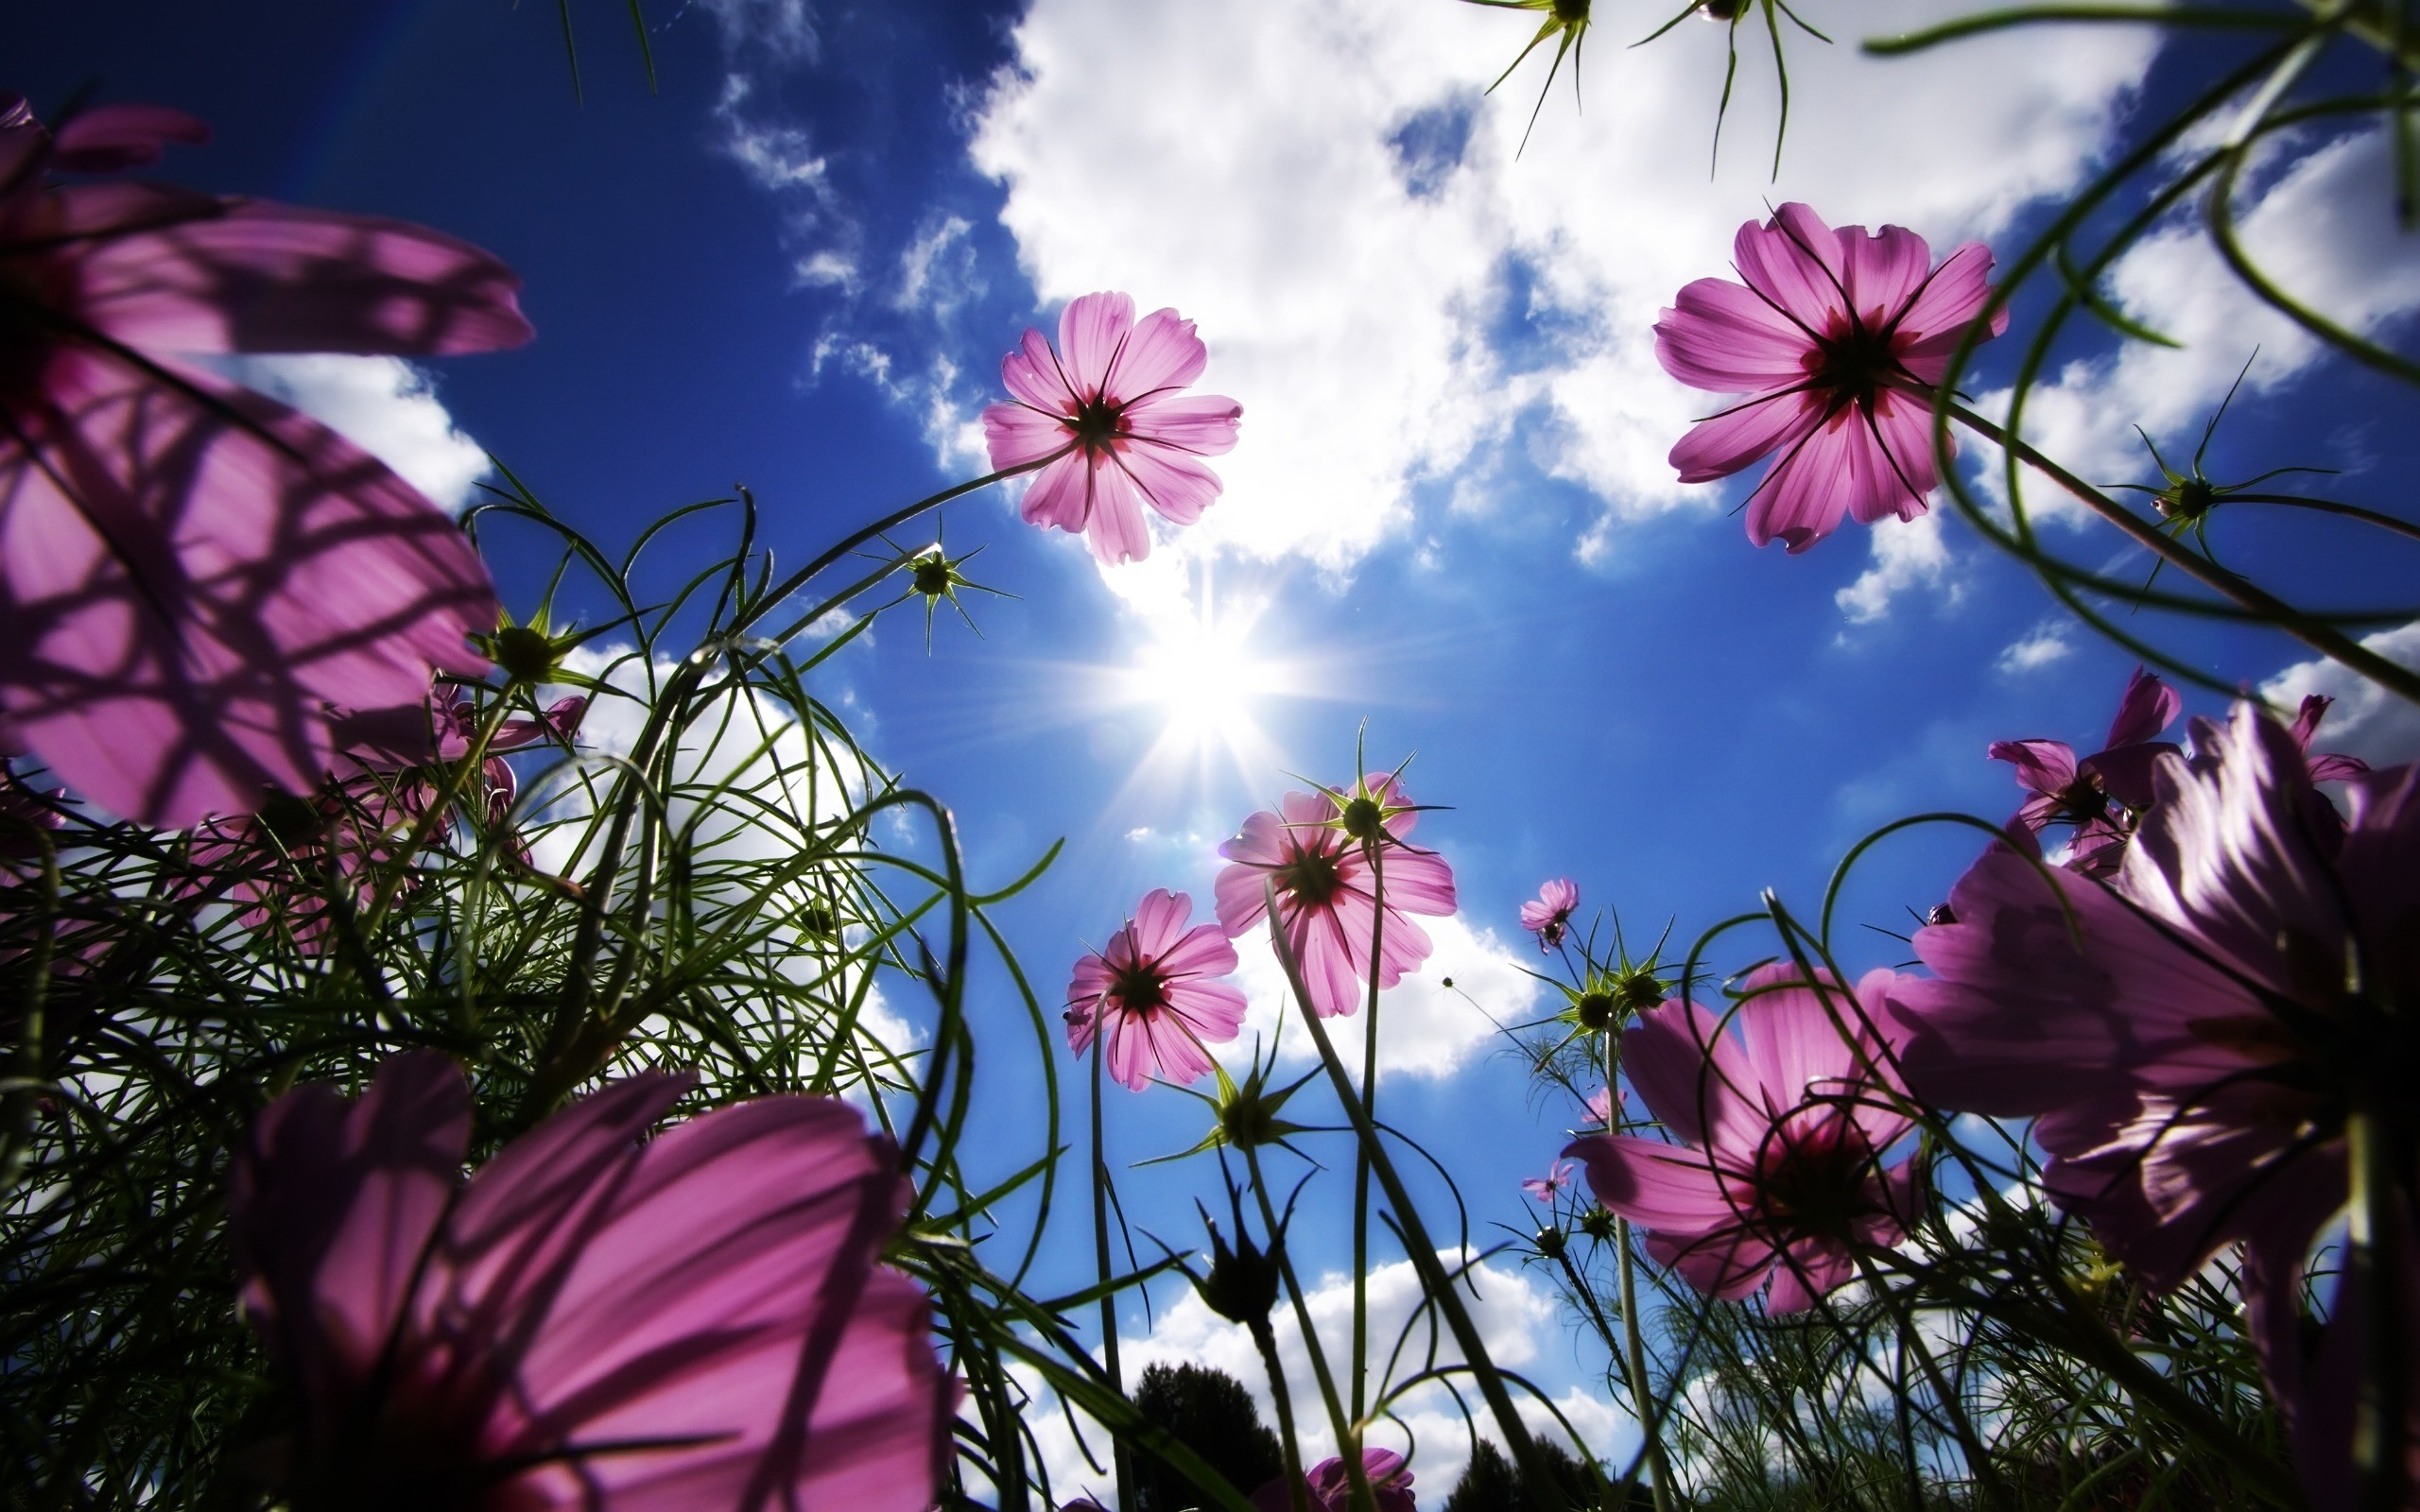 flowers wallpaper (64+ images)